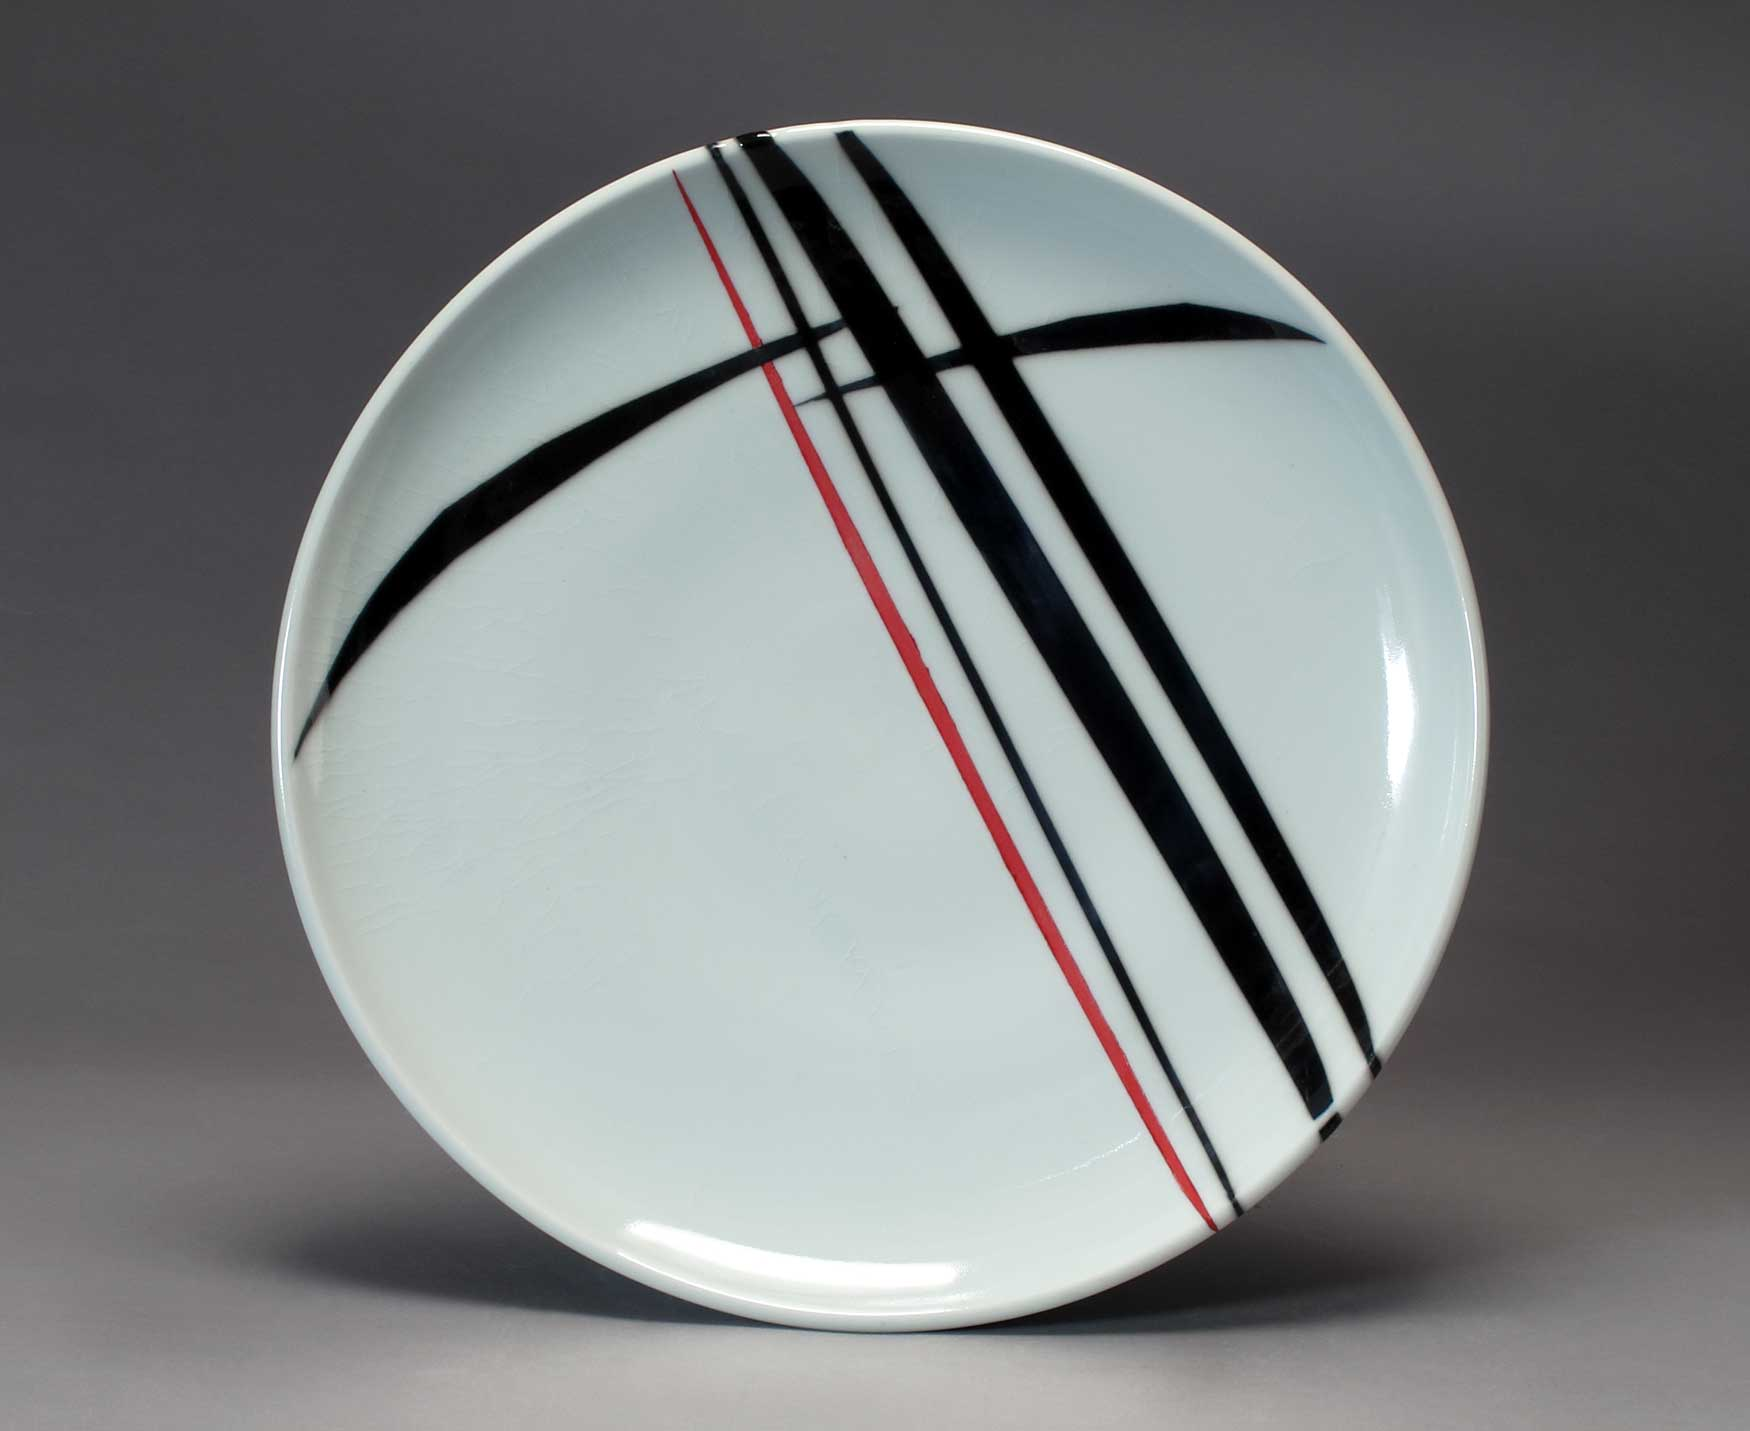 Shelley Schreiber. Platter, 2016. Wheel-thrown porcelain with colored slip, underglaze and  glaze, Cone 10 reduction, 1 x 12.5 in. Photo by artist.